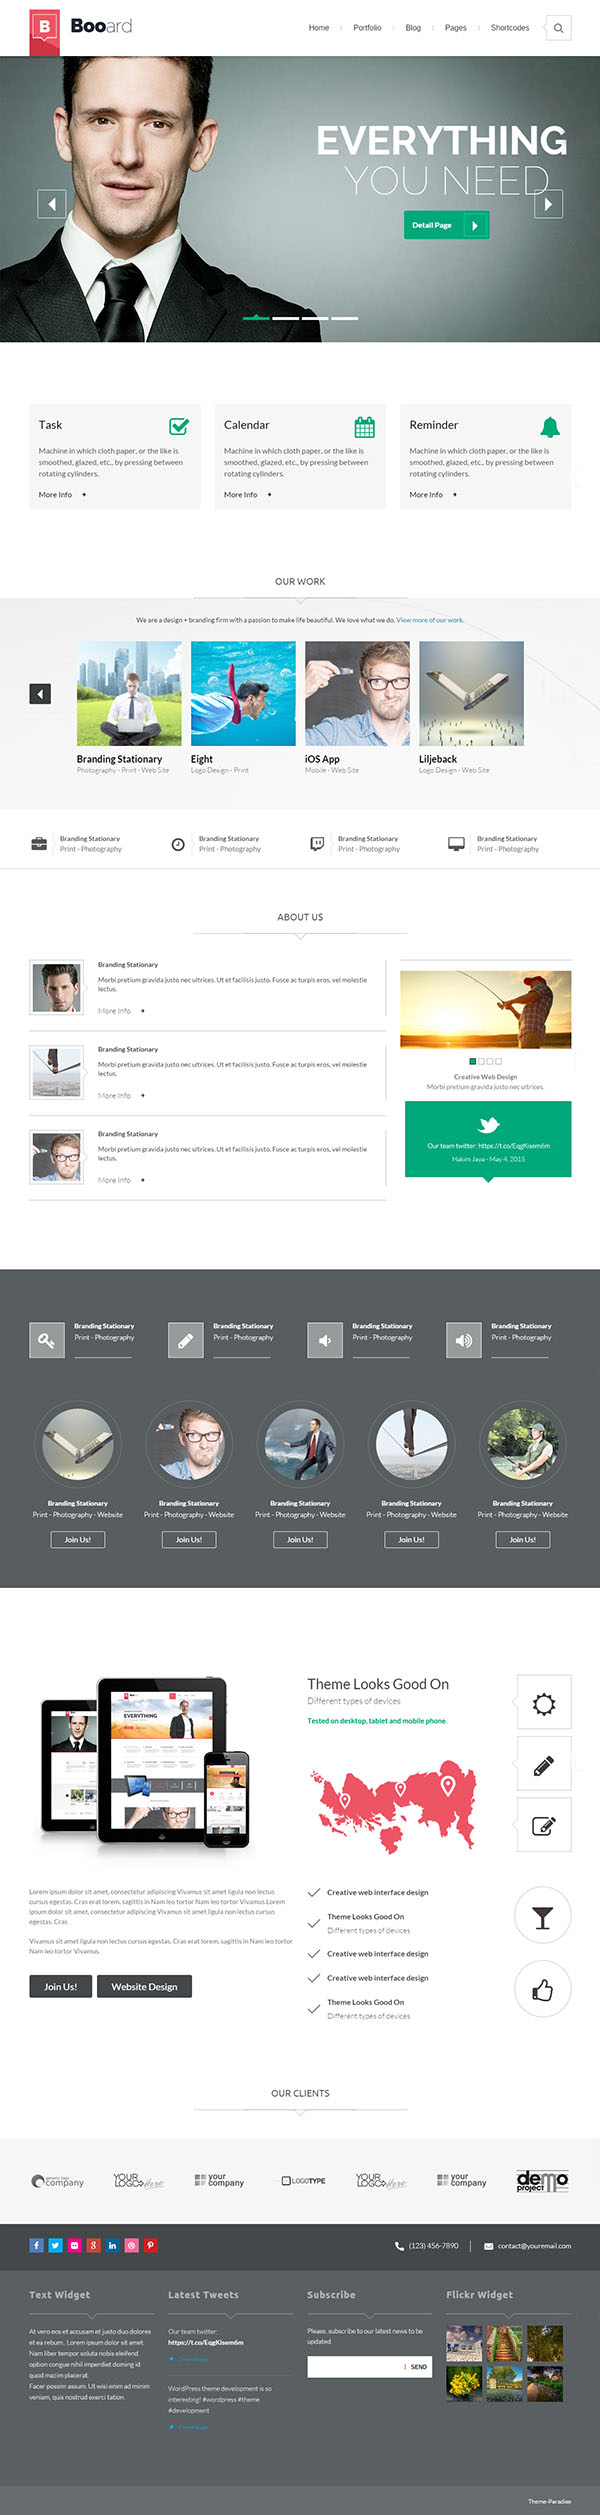 Booard – Corporate WordPress Theme